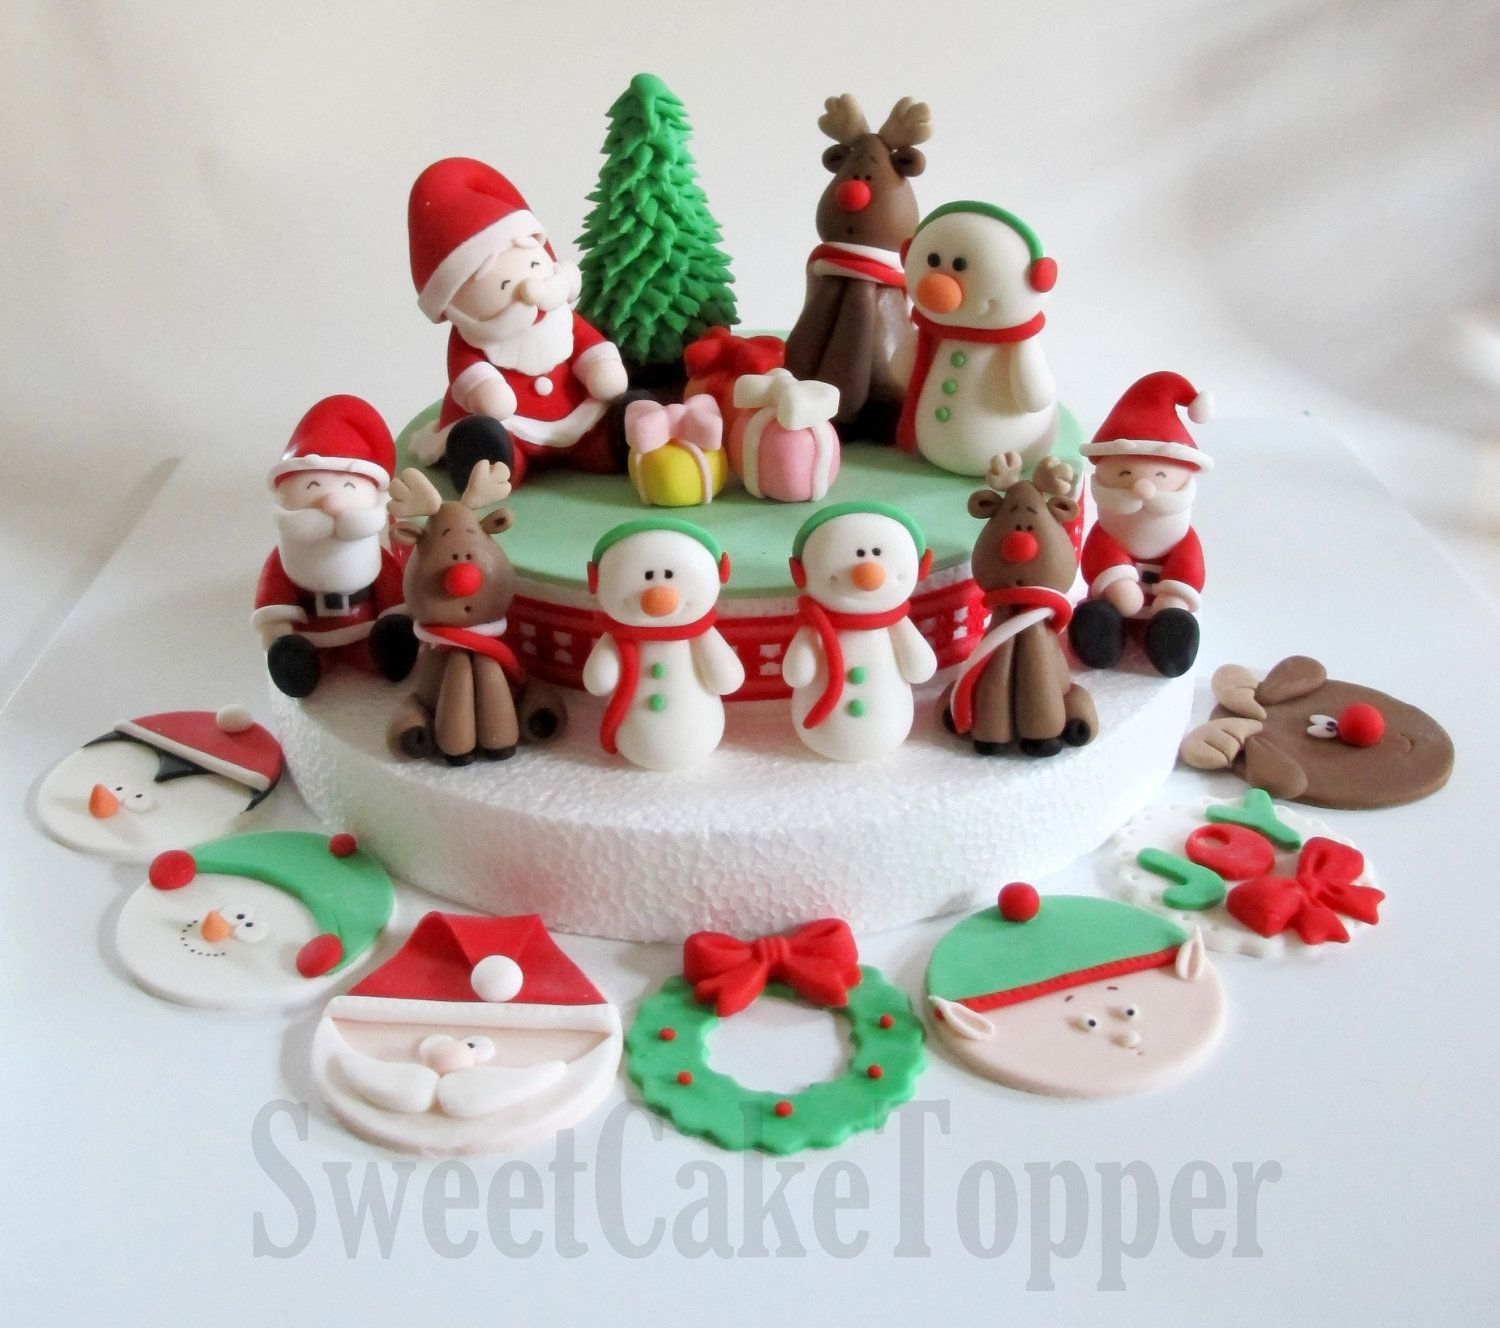 Cake Decorating Homemade : Christmas Fondant Cake Topper Set - Homemade Edible Cake Topper - 1 set. USD48.00, via Etsy ...